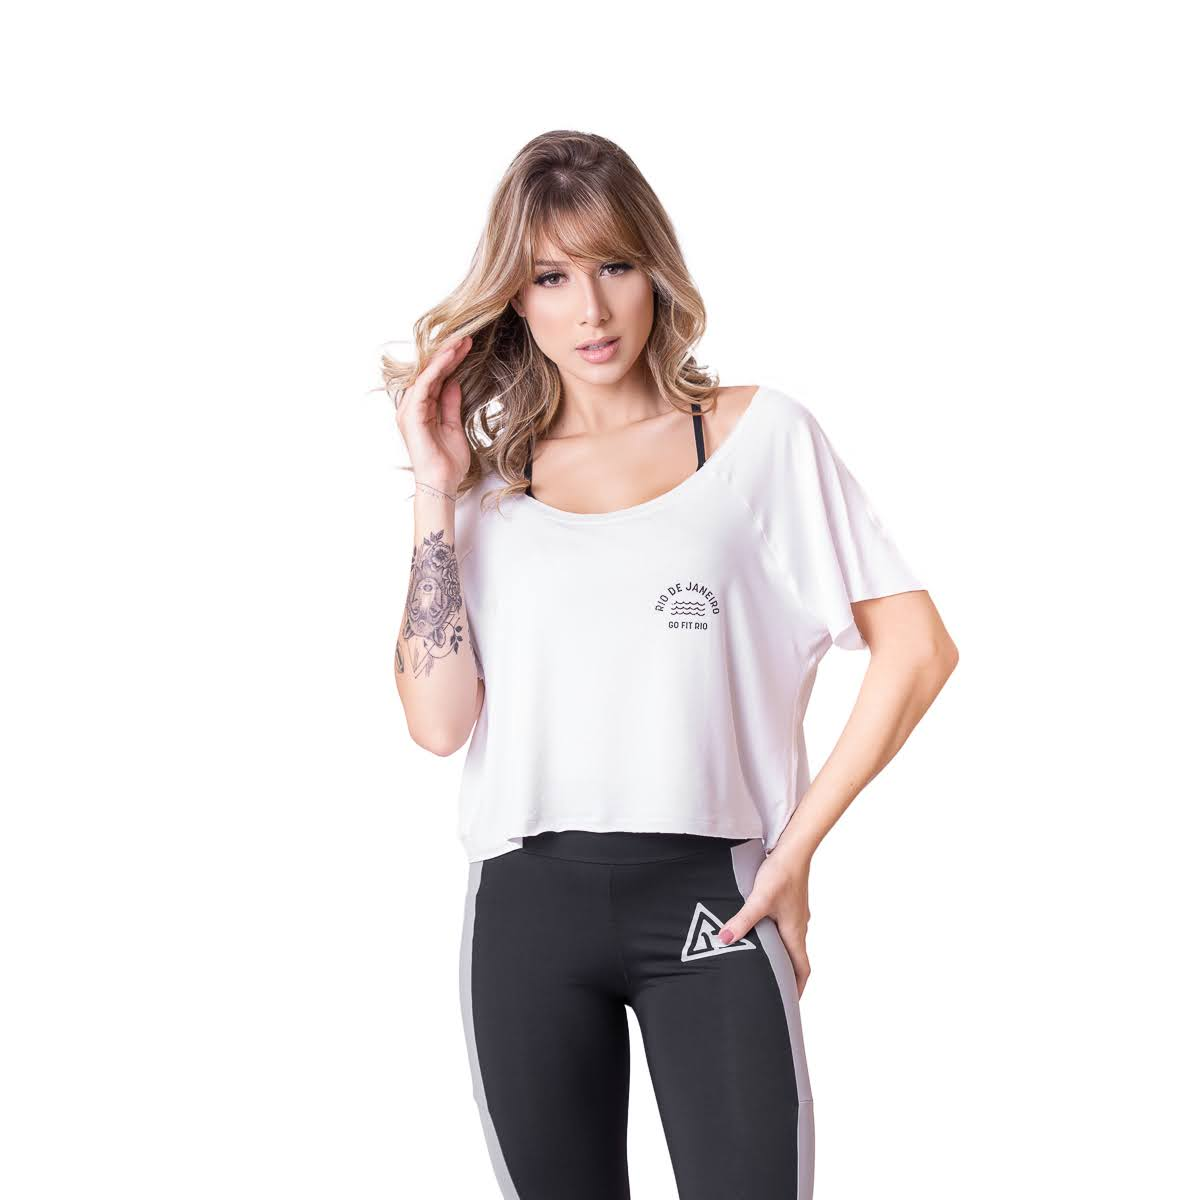 Cropped Fitness Go Fit Rio Equilibrium